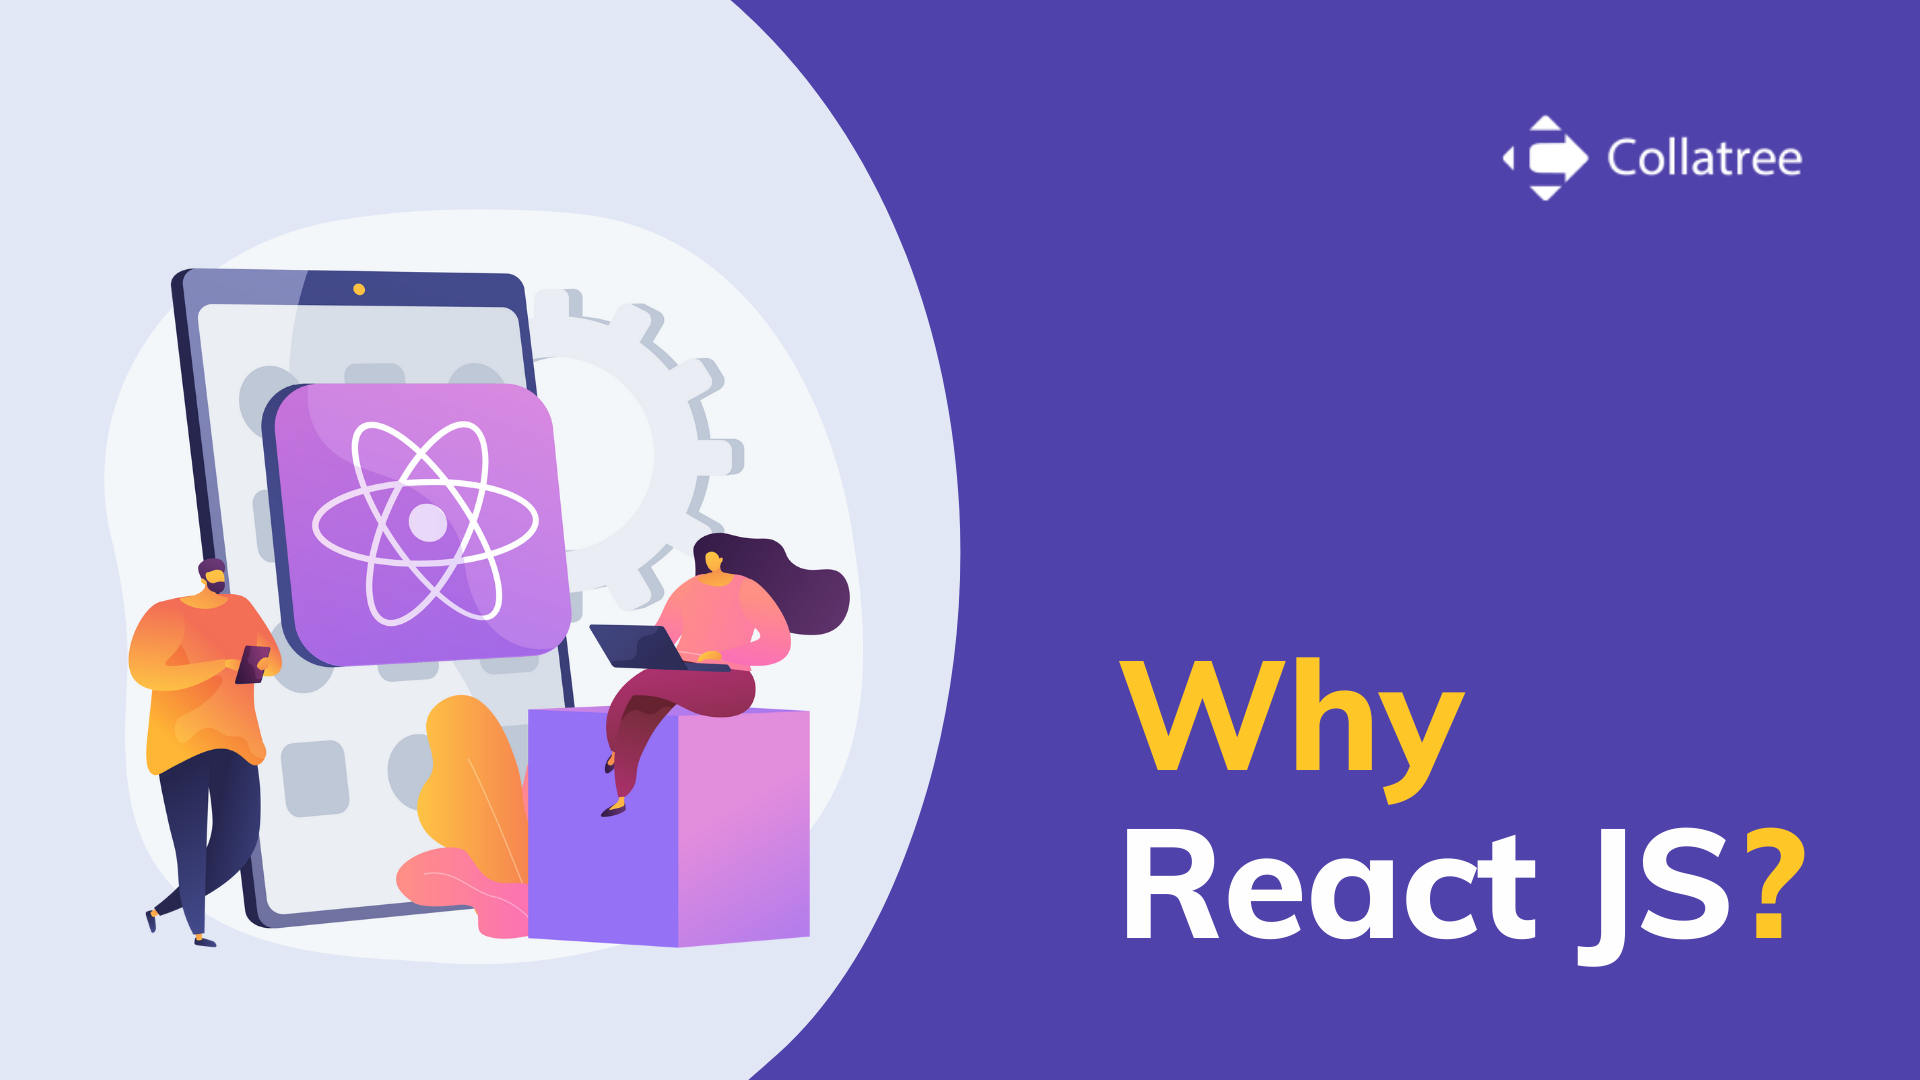 Why do we choose React JS?